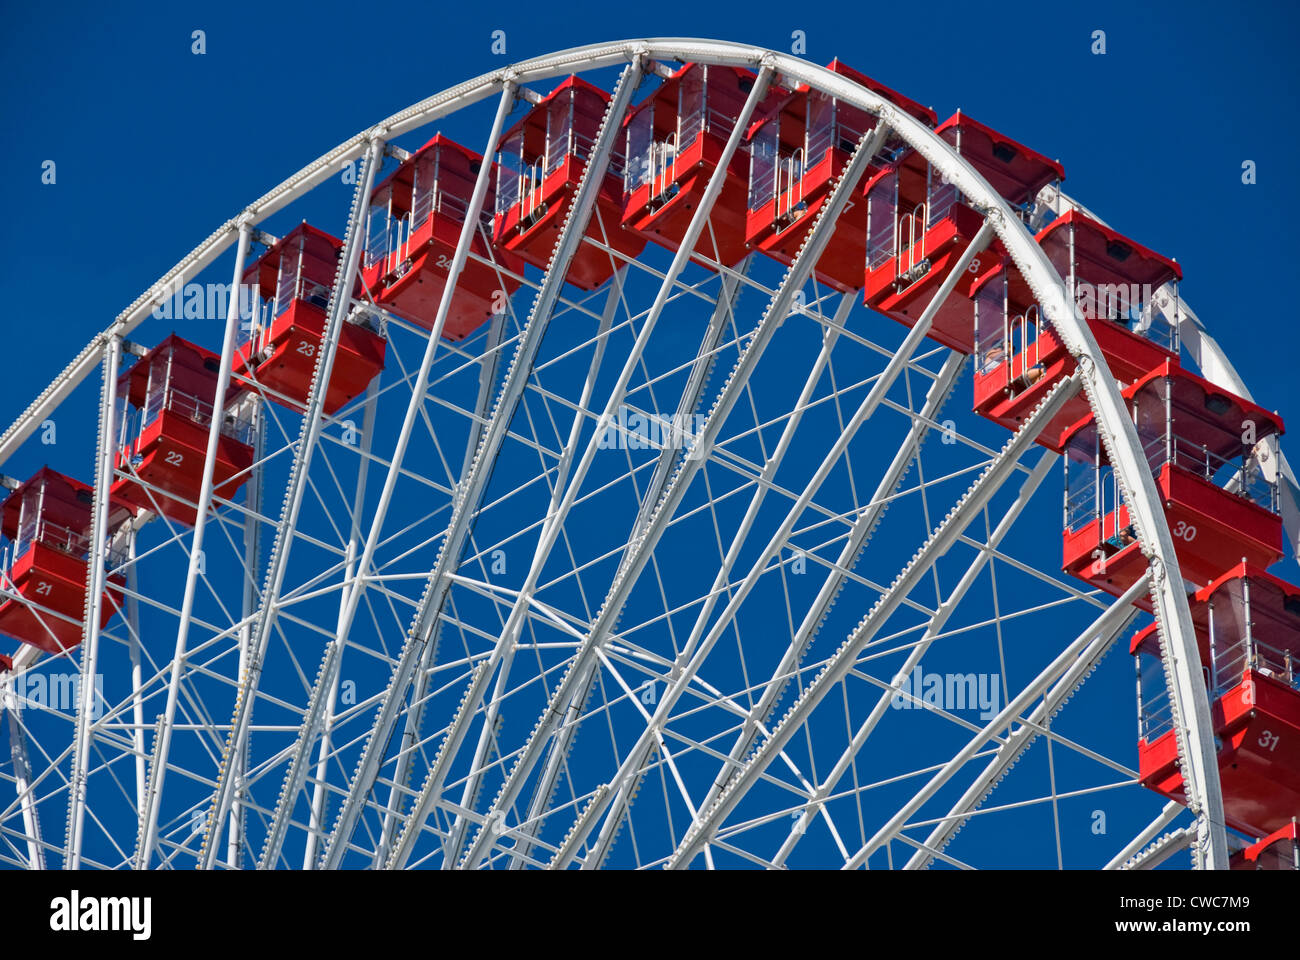 Up Close Image Of Ferris Wheel At Navy Pier In Chicago Illinois Stock Photo Alamy